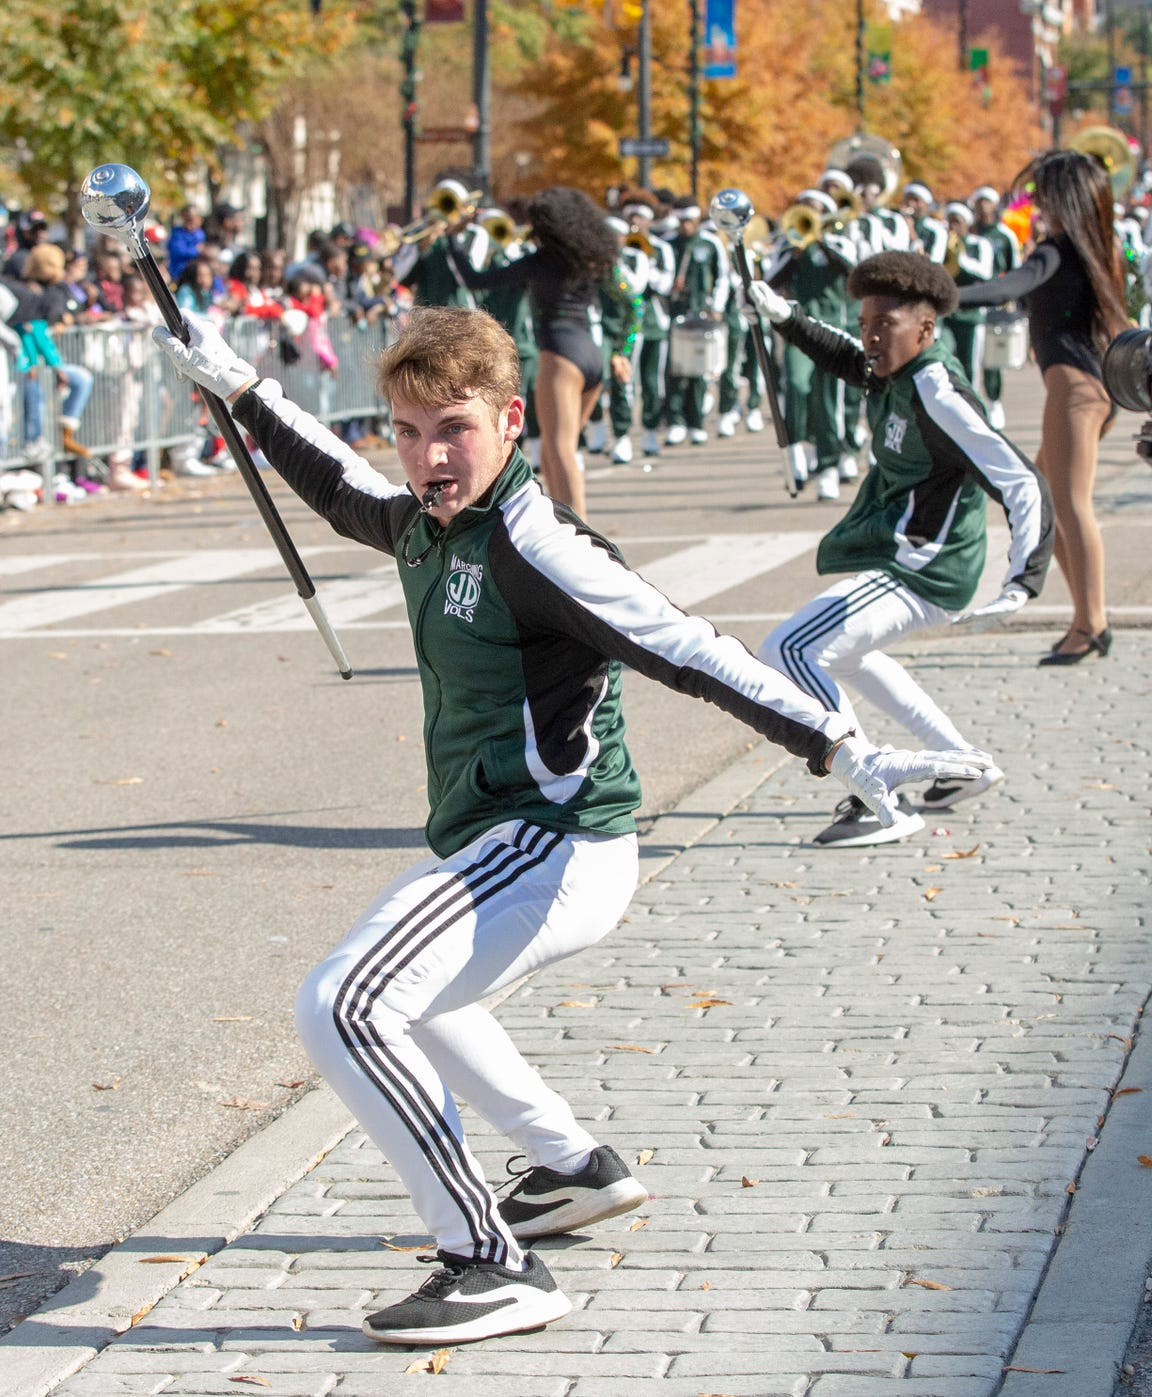 Justin Heideman, a drum major who went viral recently, leads his Jeff Davis band down Dexter to the shouts of many adoring fans.